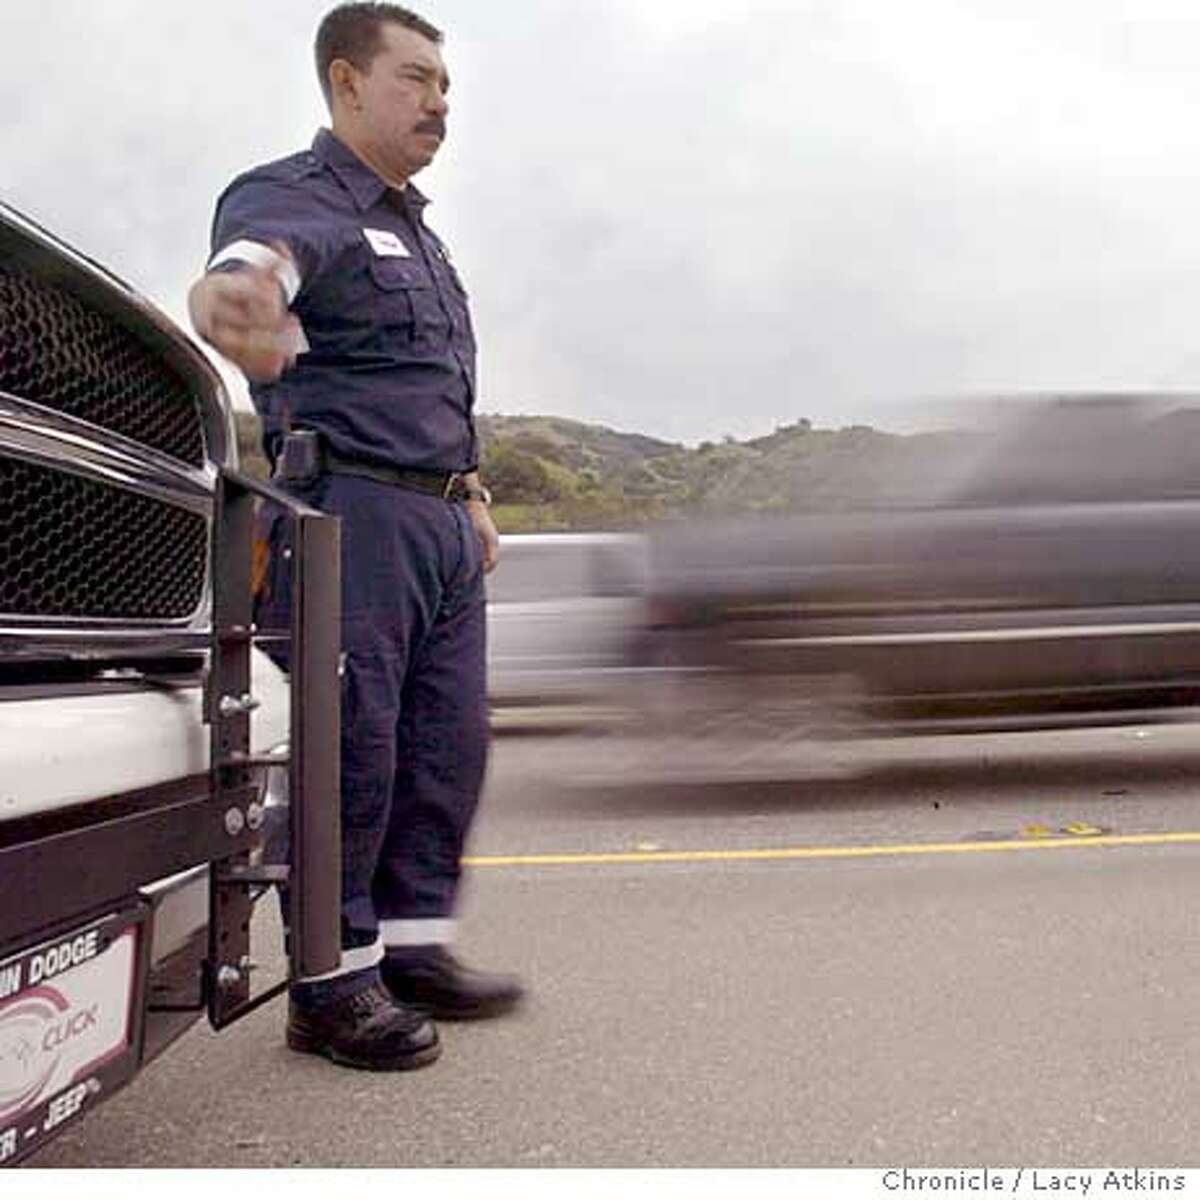 Enrique Julia, operations supervisor for Orange County 91 Express Lanes at the baracade between the lanes on Highyway 91, in Anaheim, Dec. 7,2004. The toll express lanes on highway 91 in Anaheim, Dec. 7, 2004. The Express lane is a lane commuters if not carpooling can pay a toll through Fast Track to drive in. LACY ATKINS/SAN FRANCISCO CHRONICLE